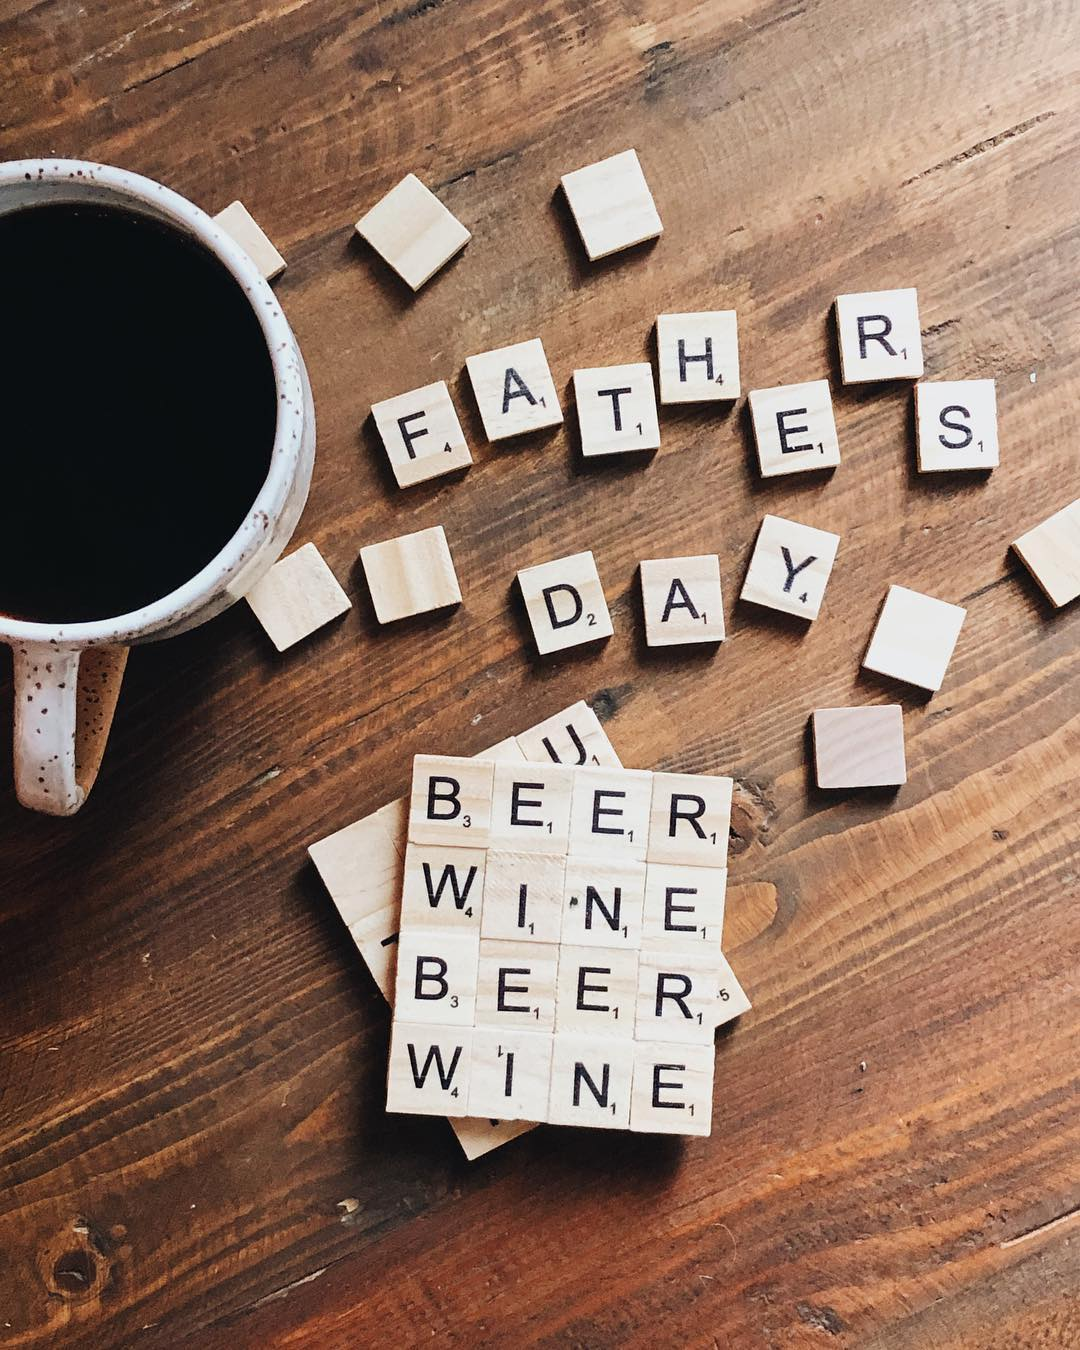 Coasters made out of Scrabble tiles